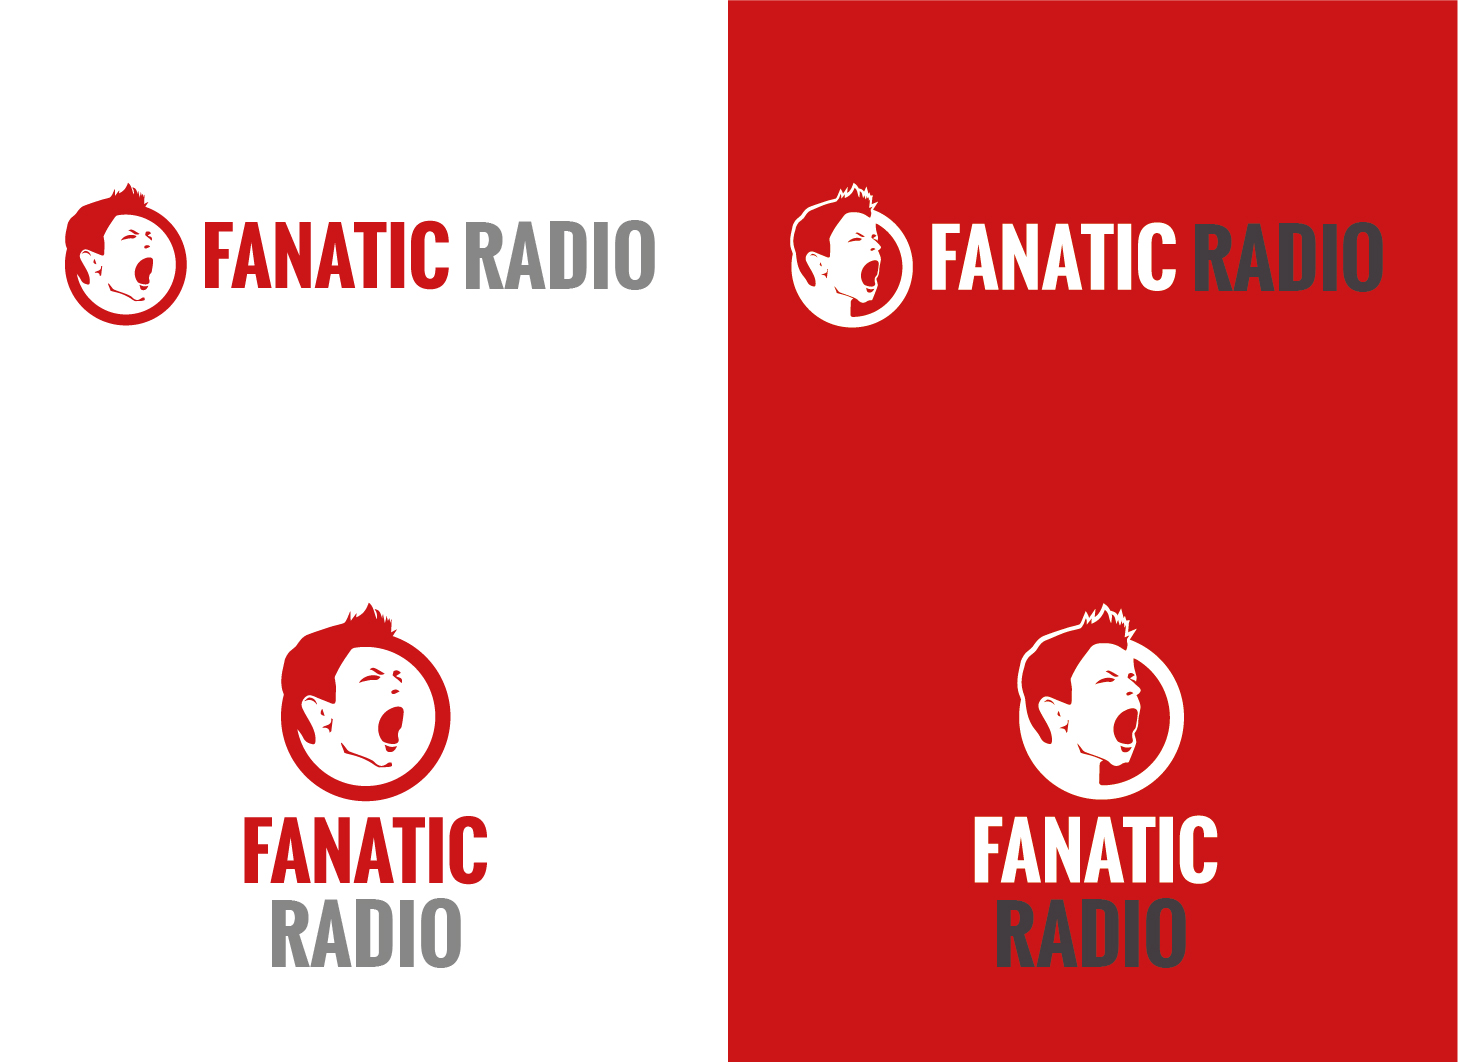 Fanatic-Radio-02.jpg